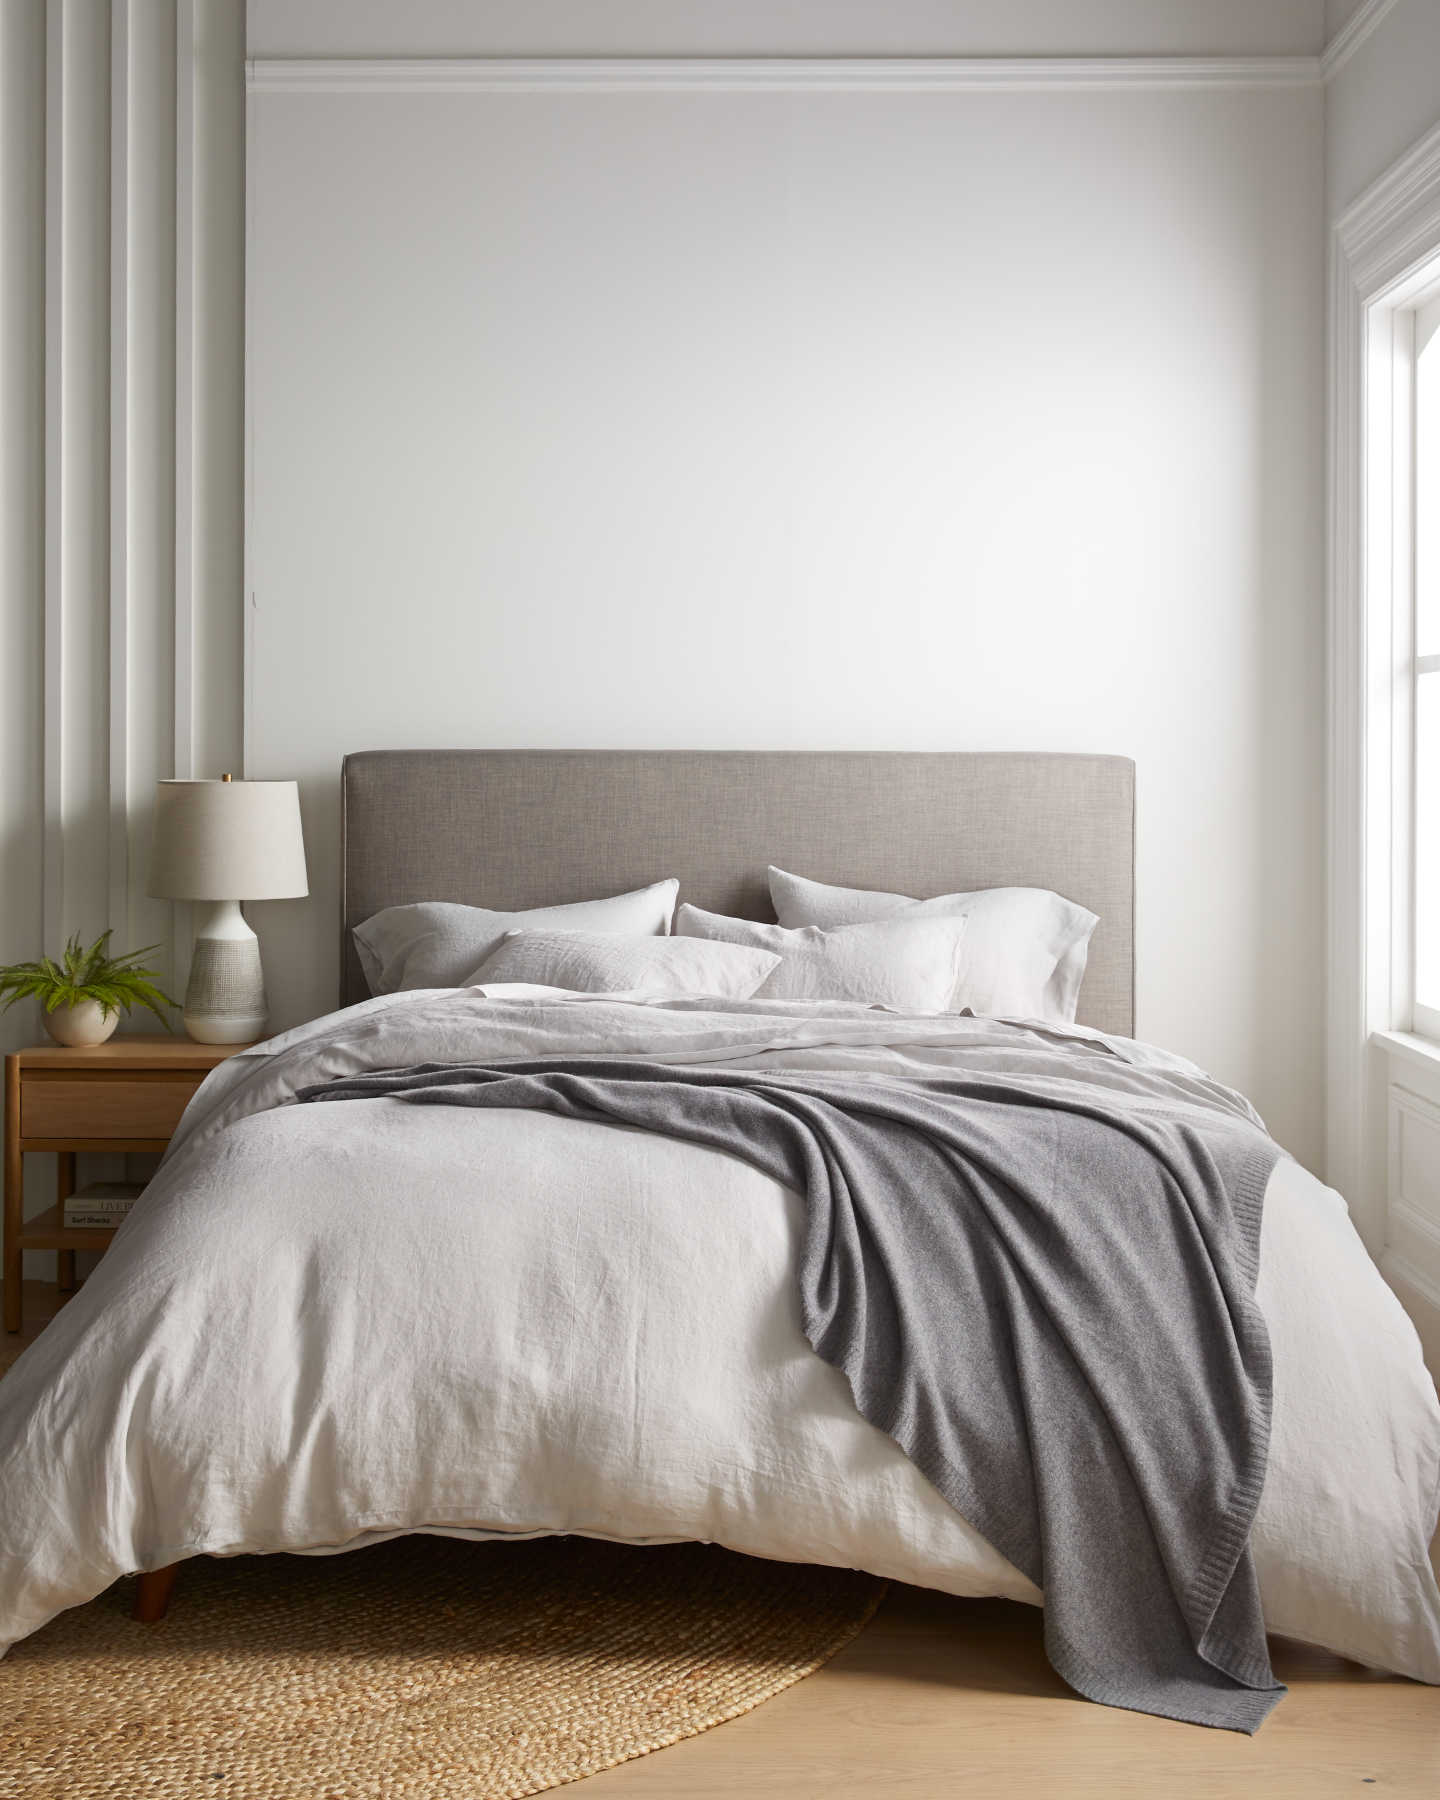 Belgian Linen Duvet Cover Set - Light Grey - 4